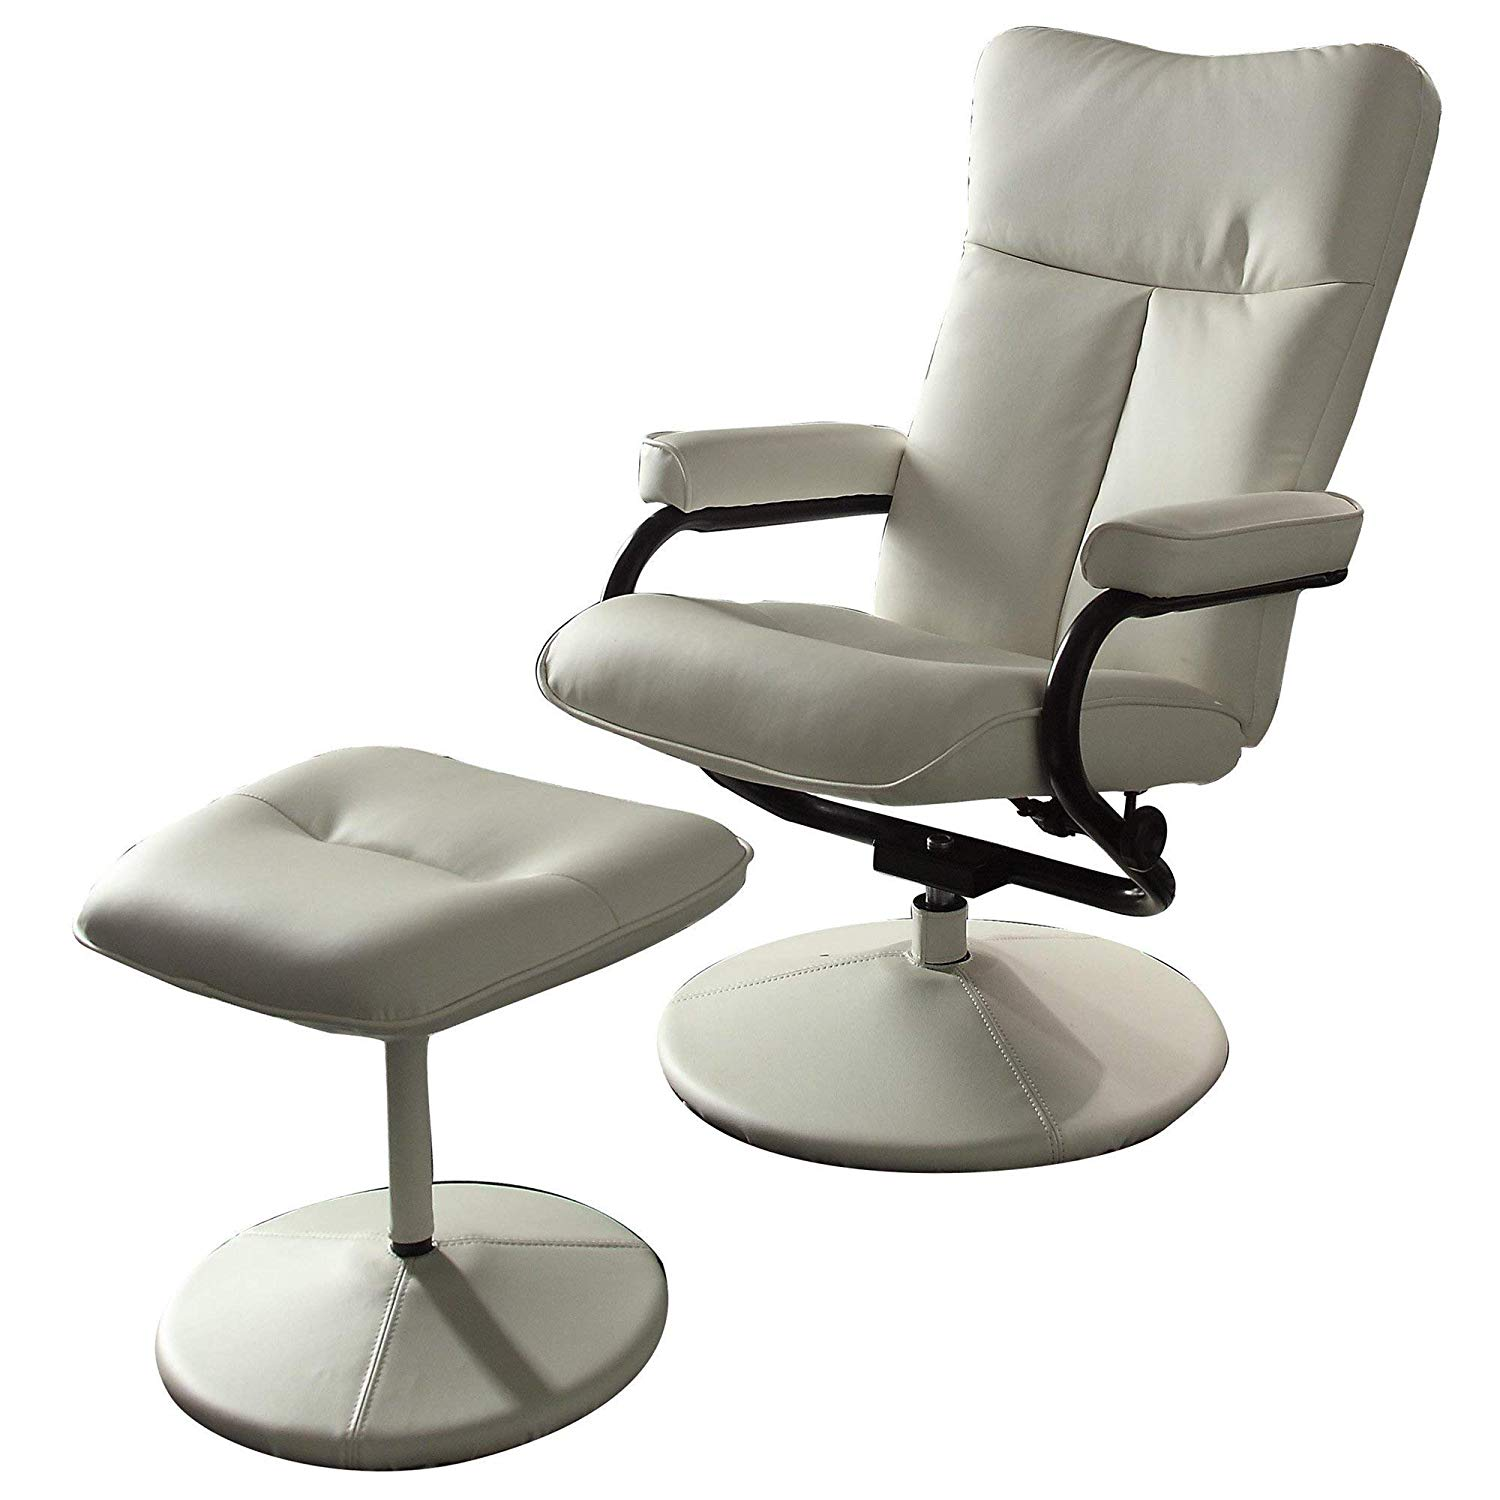 Cheap White Swivel Chair Ikea Find White Swivel Chair Ikea